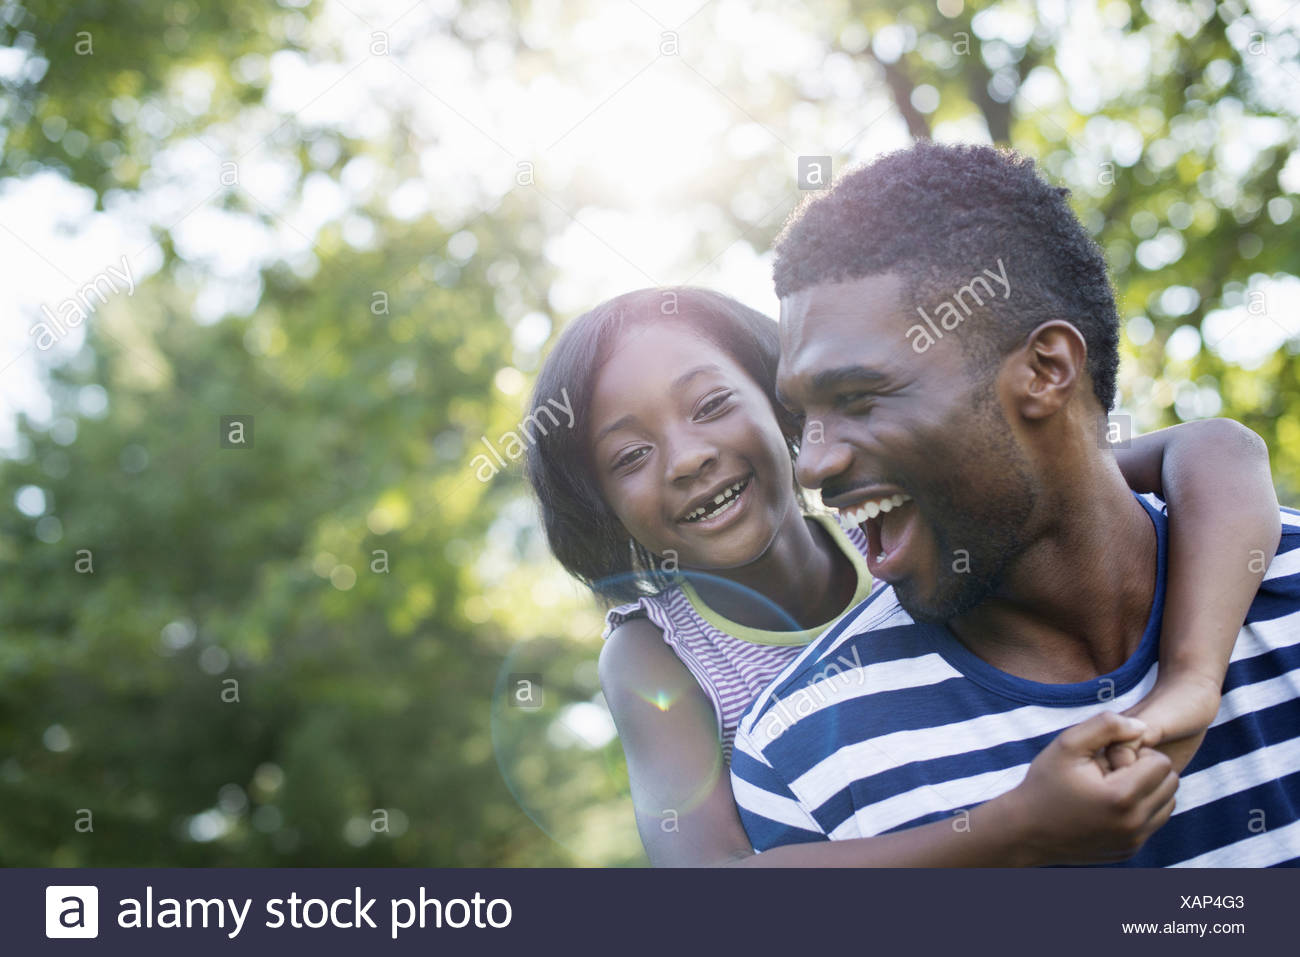 A man giving a child a piggyback in the shade of trees on a summer day Stock Photo